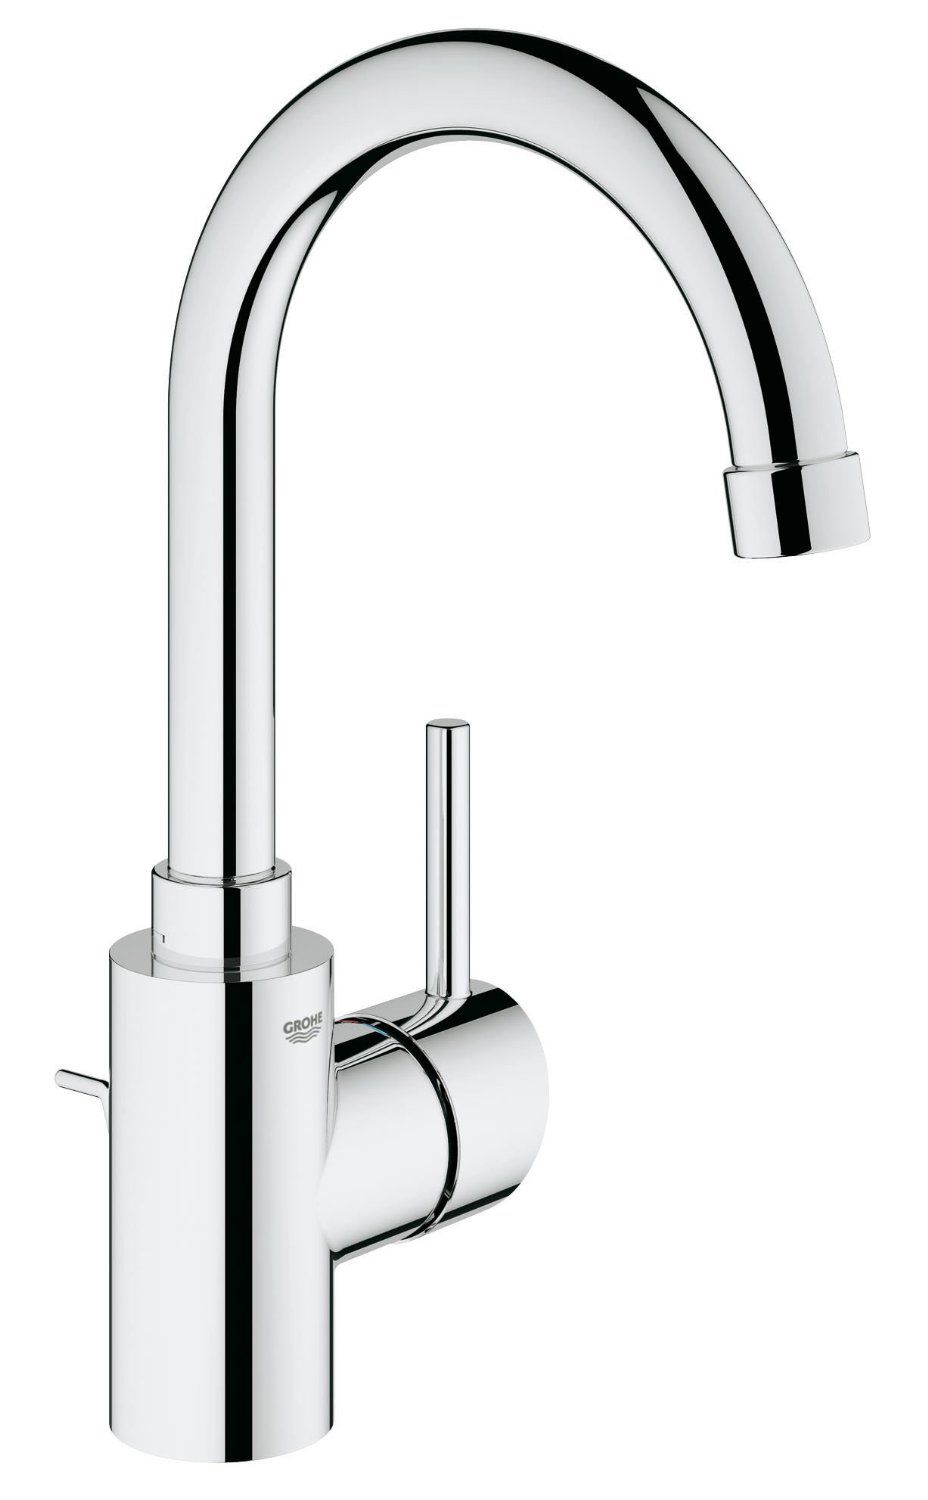 Grohe 32138001 Concetto Single Handle Bathroom Faucet Ceiling Fan Replacement Blad Bathroom Faucets Single Handle Bathroom Faucet Single Hole Bathroom Faucet [ 1500 x 928 Pixel ]